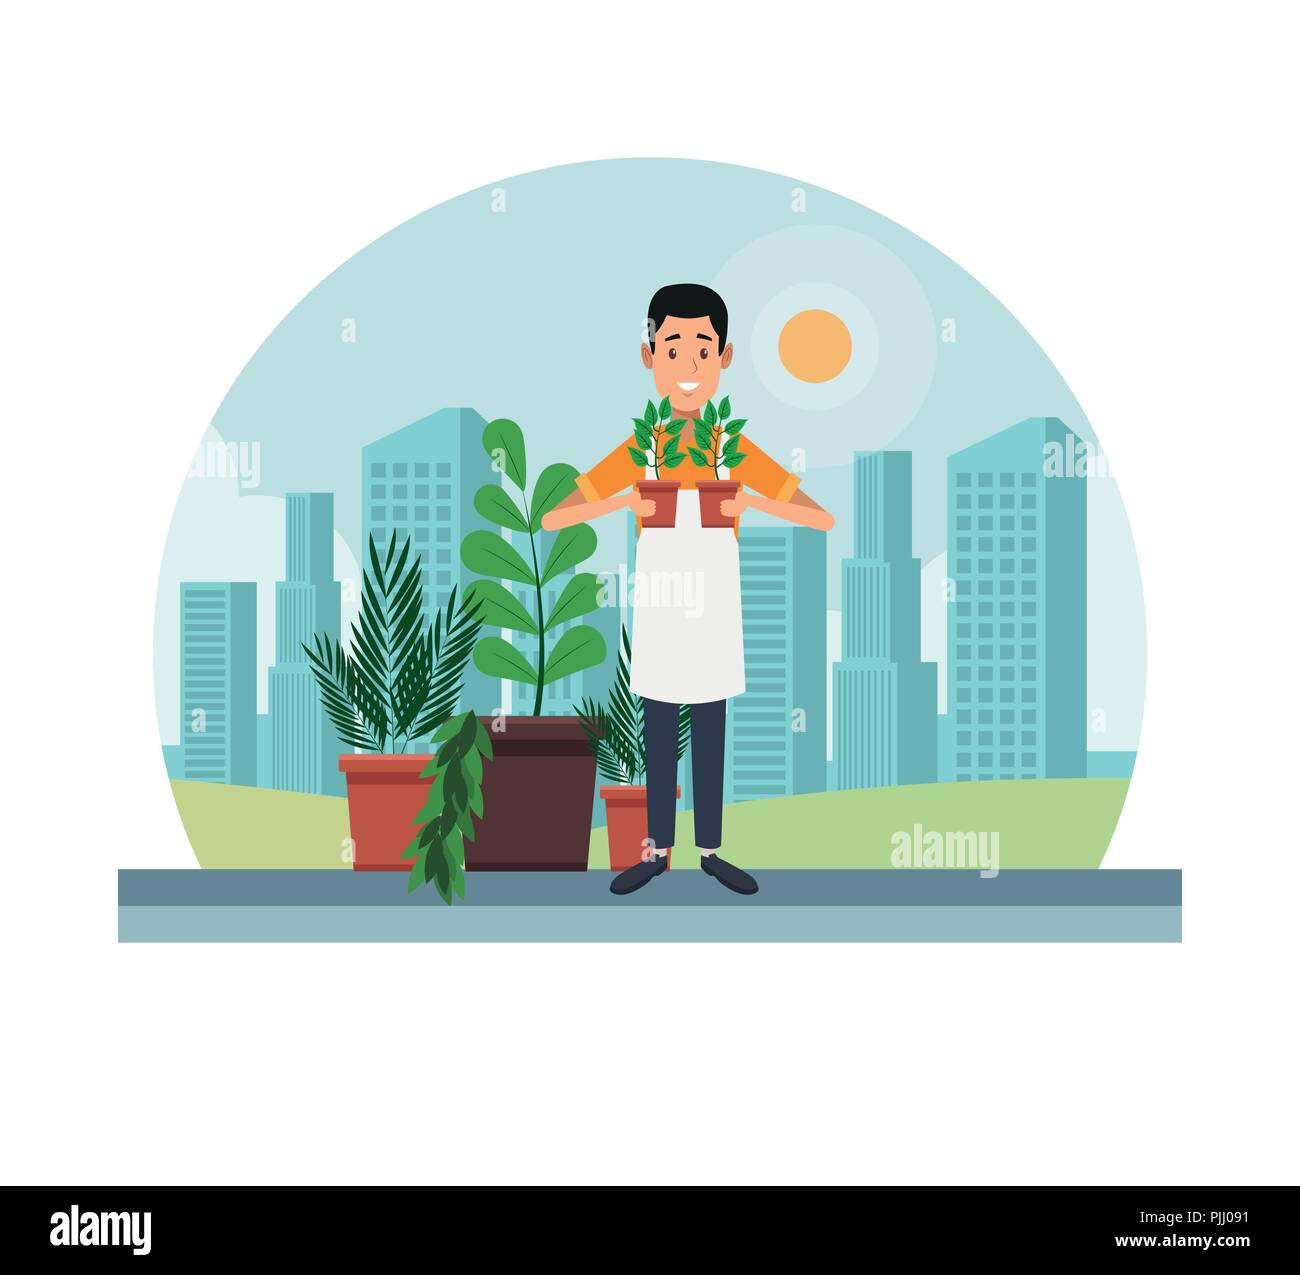 Gardening shopping at city - Stock Image